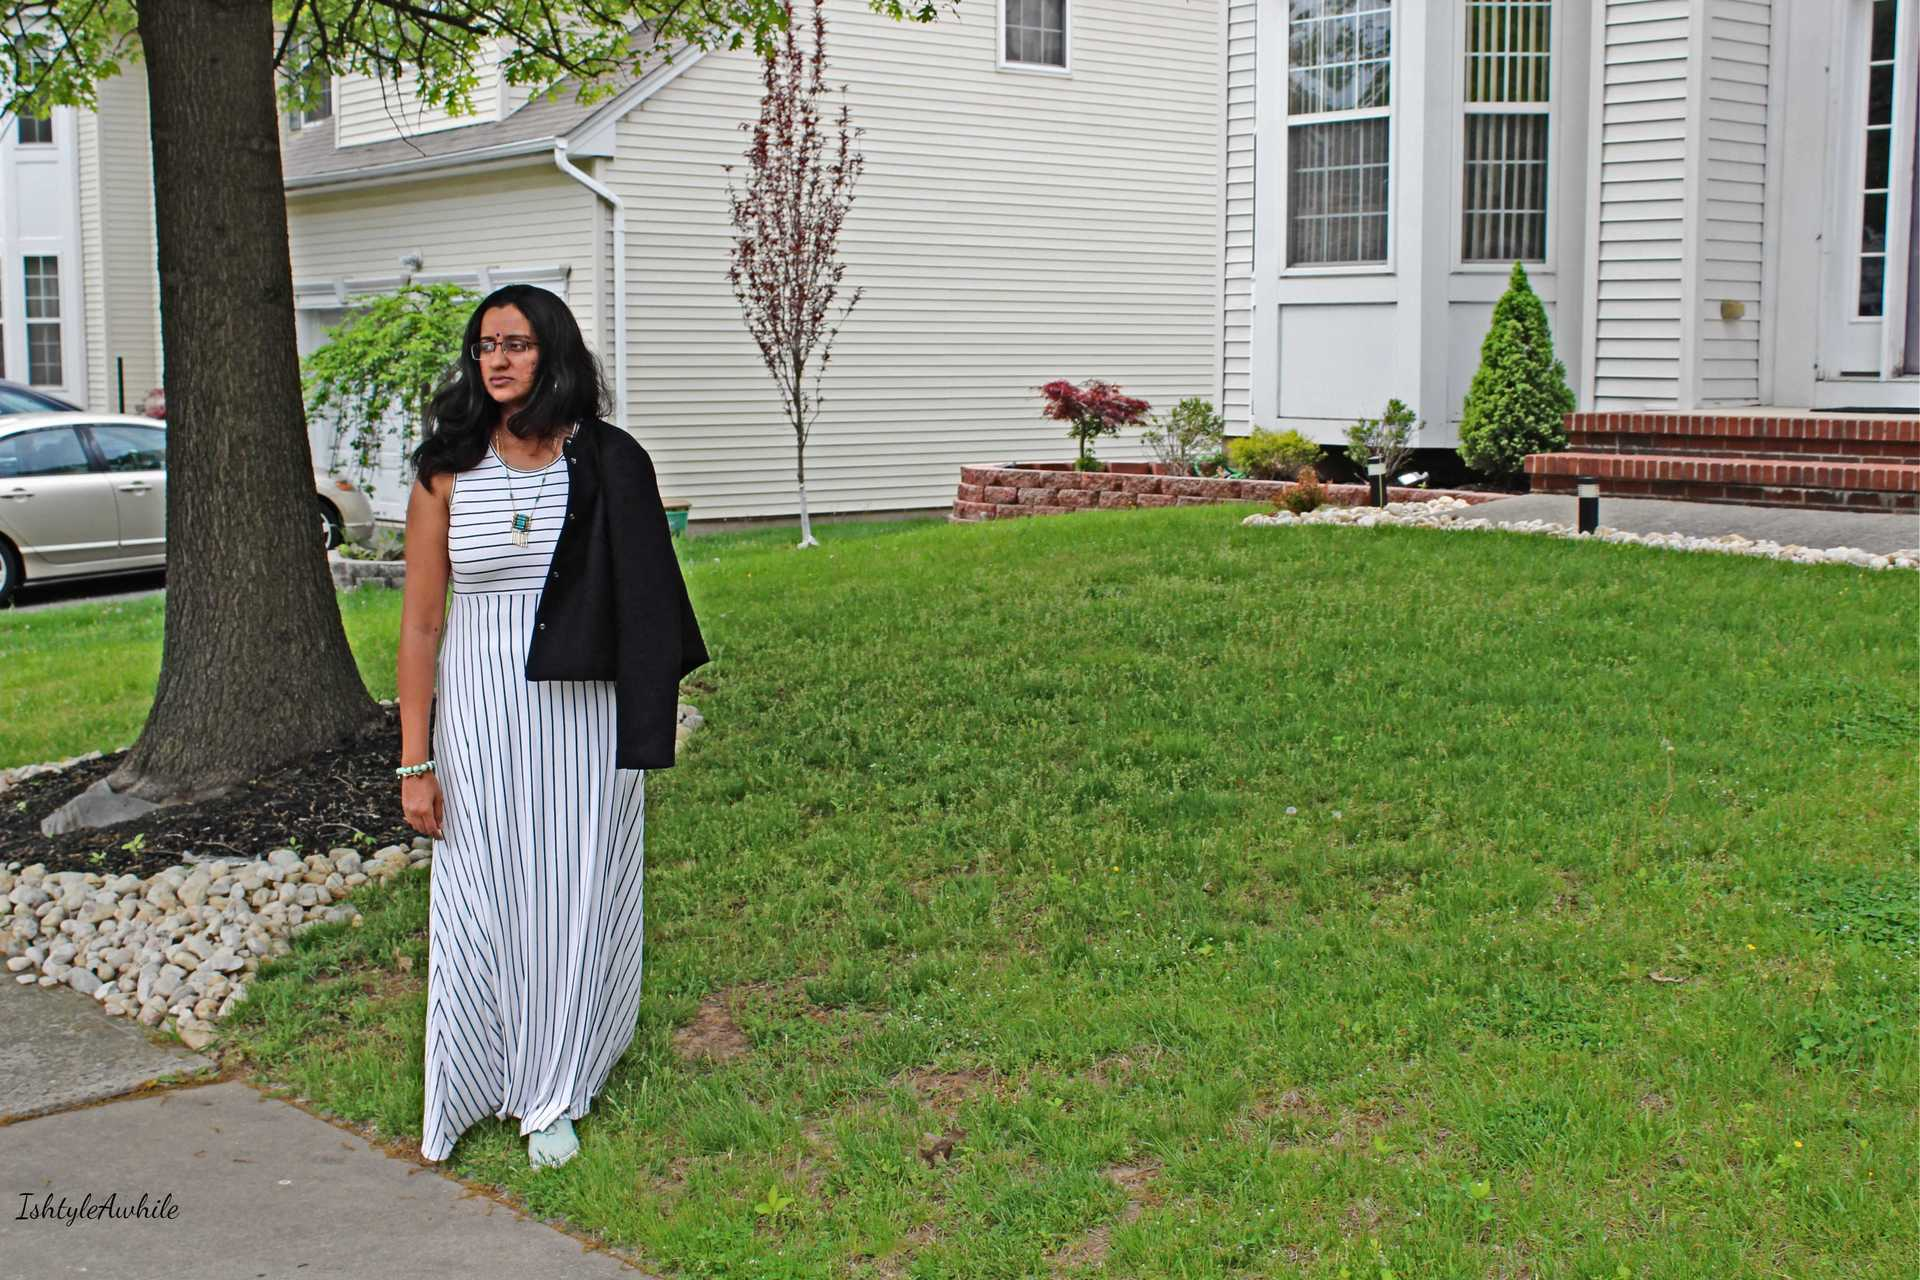 IshtyleAwhile - Styling a white and black striped maxi